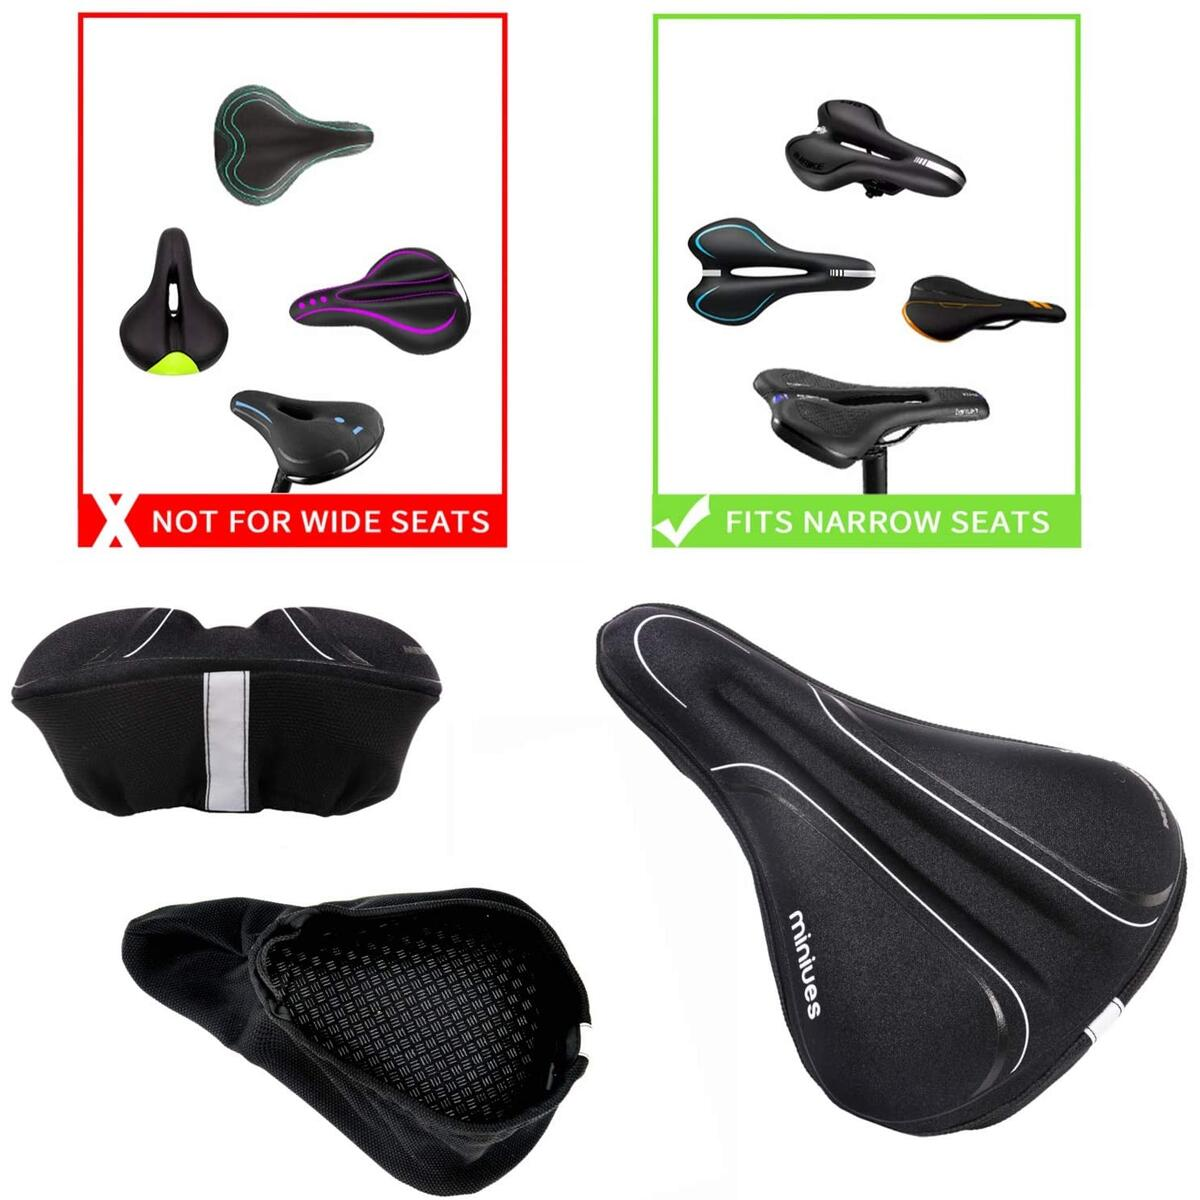 Bike Seat Cover/Bike Saddle Cover,Comfortable Bicycle Seat Cover for Men Women Thickened Memory Foam,Soft Bicycle Saddle Cover for Cruiser Mountain Road and Exercise Most Bikes